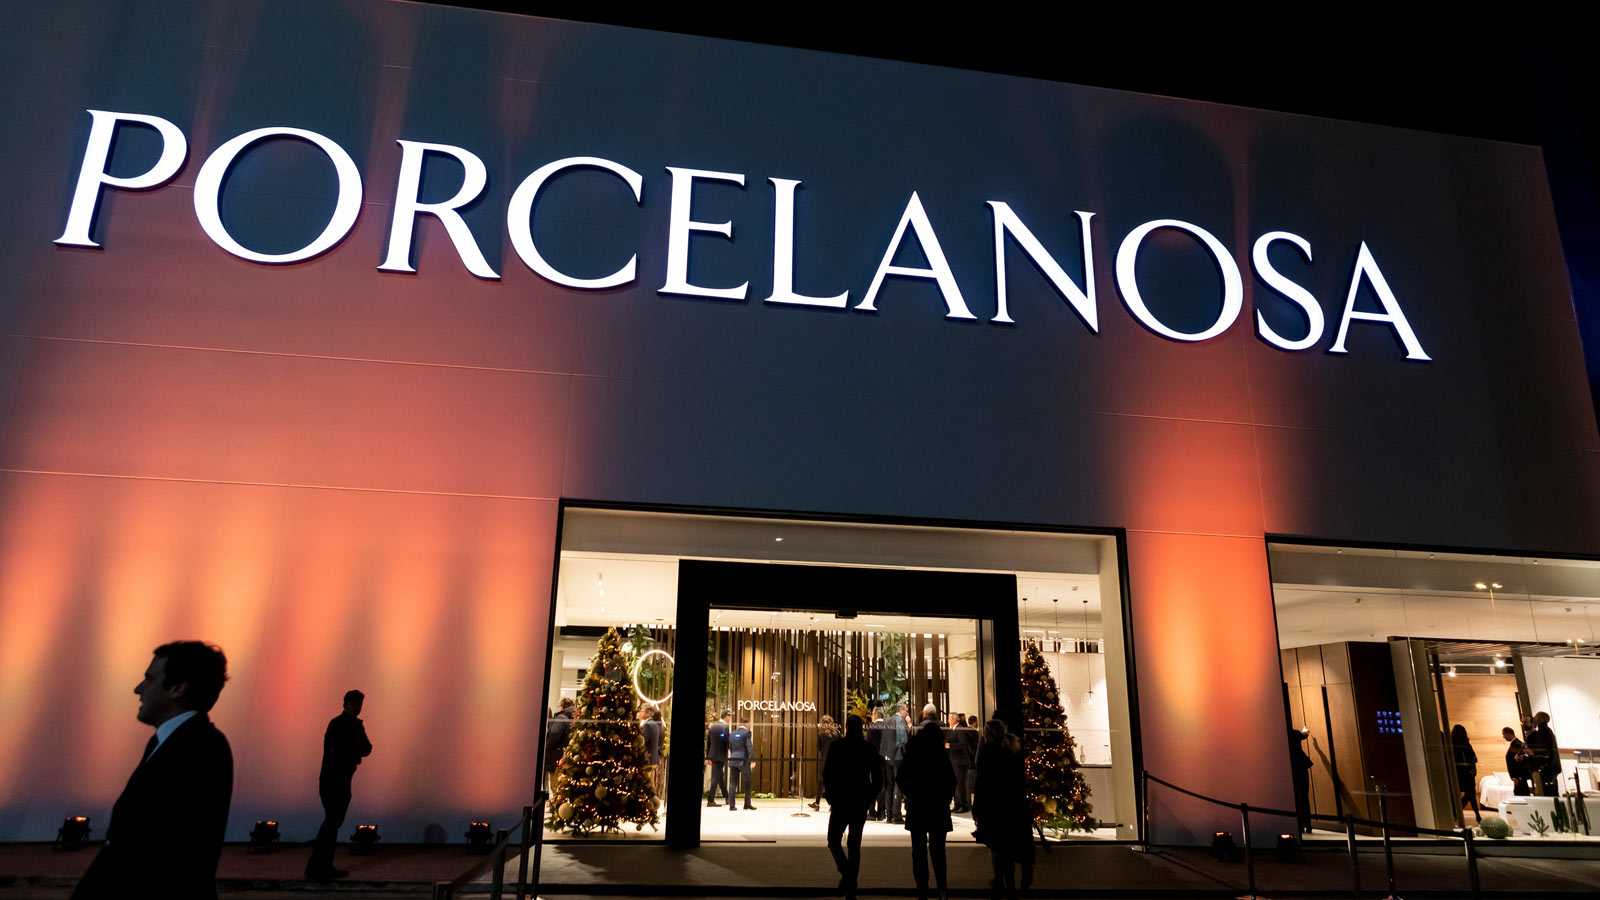 PORCELANOSA Group updates its 2,000 metre square store in Sedaví